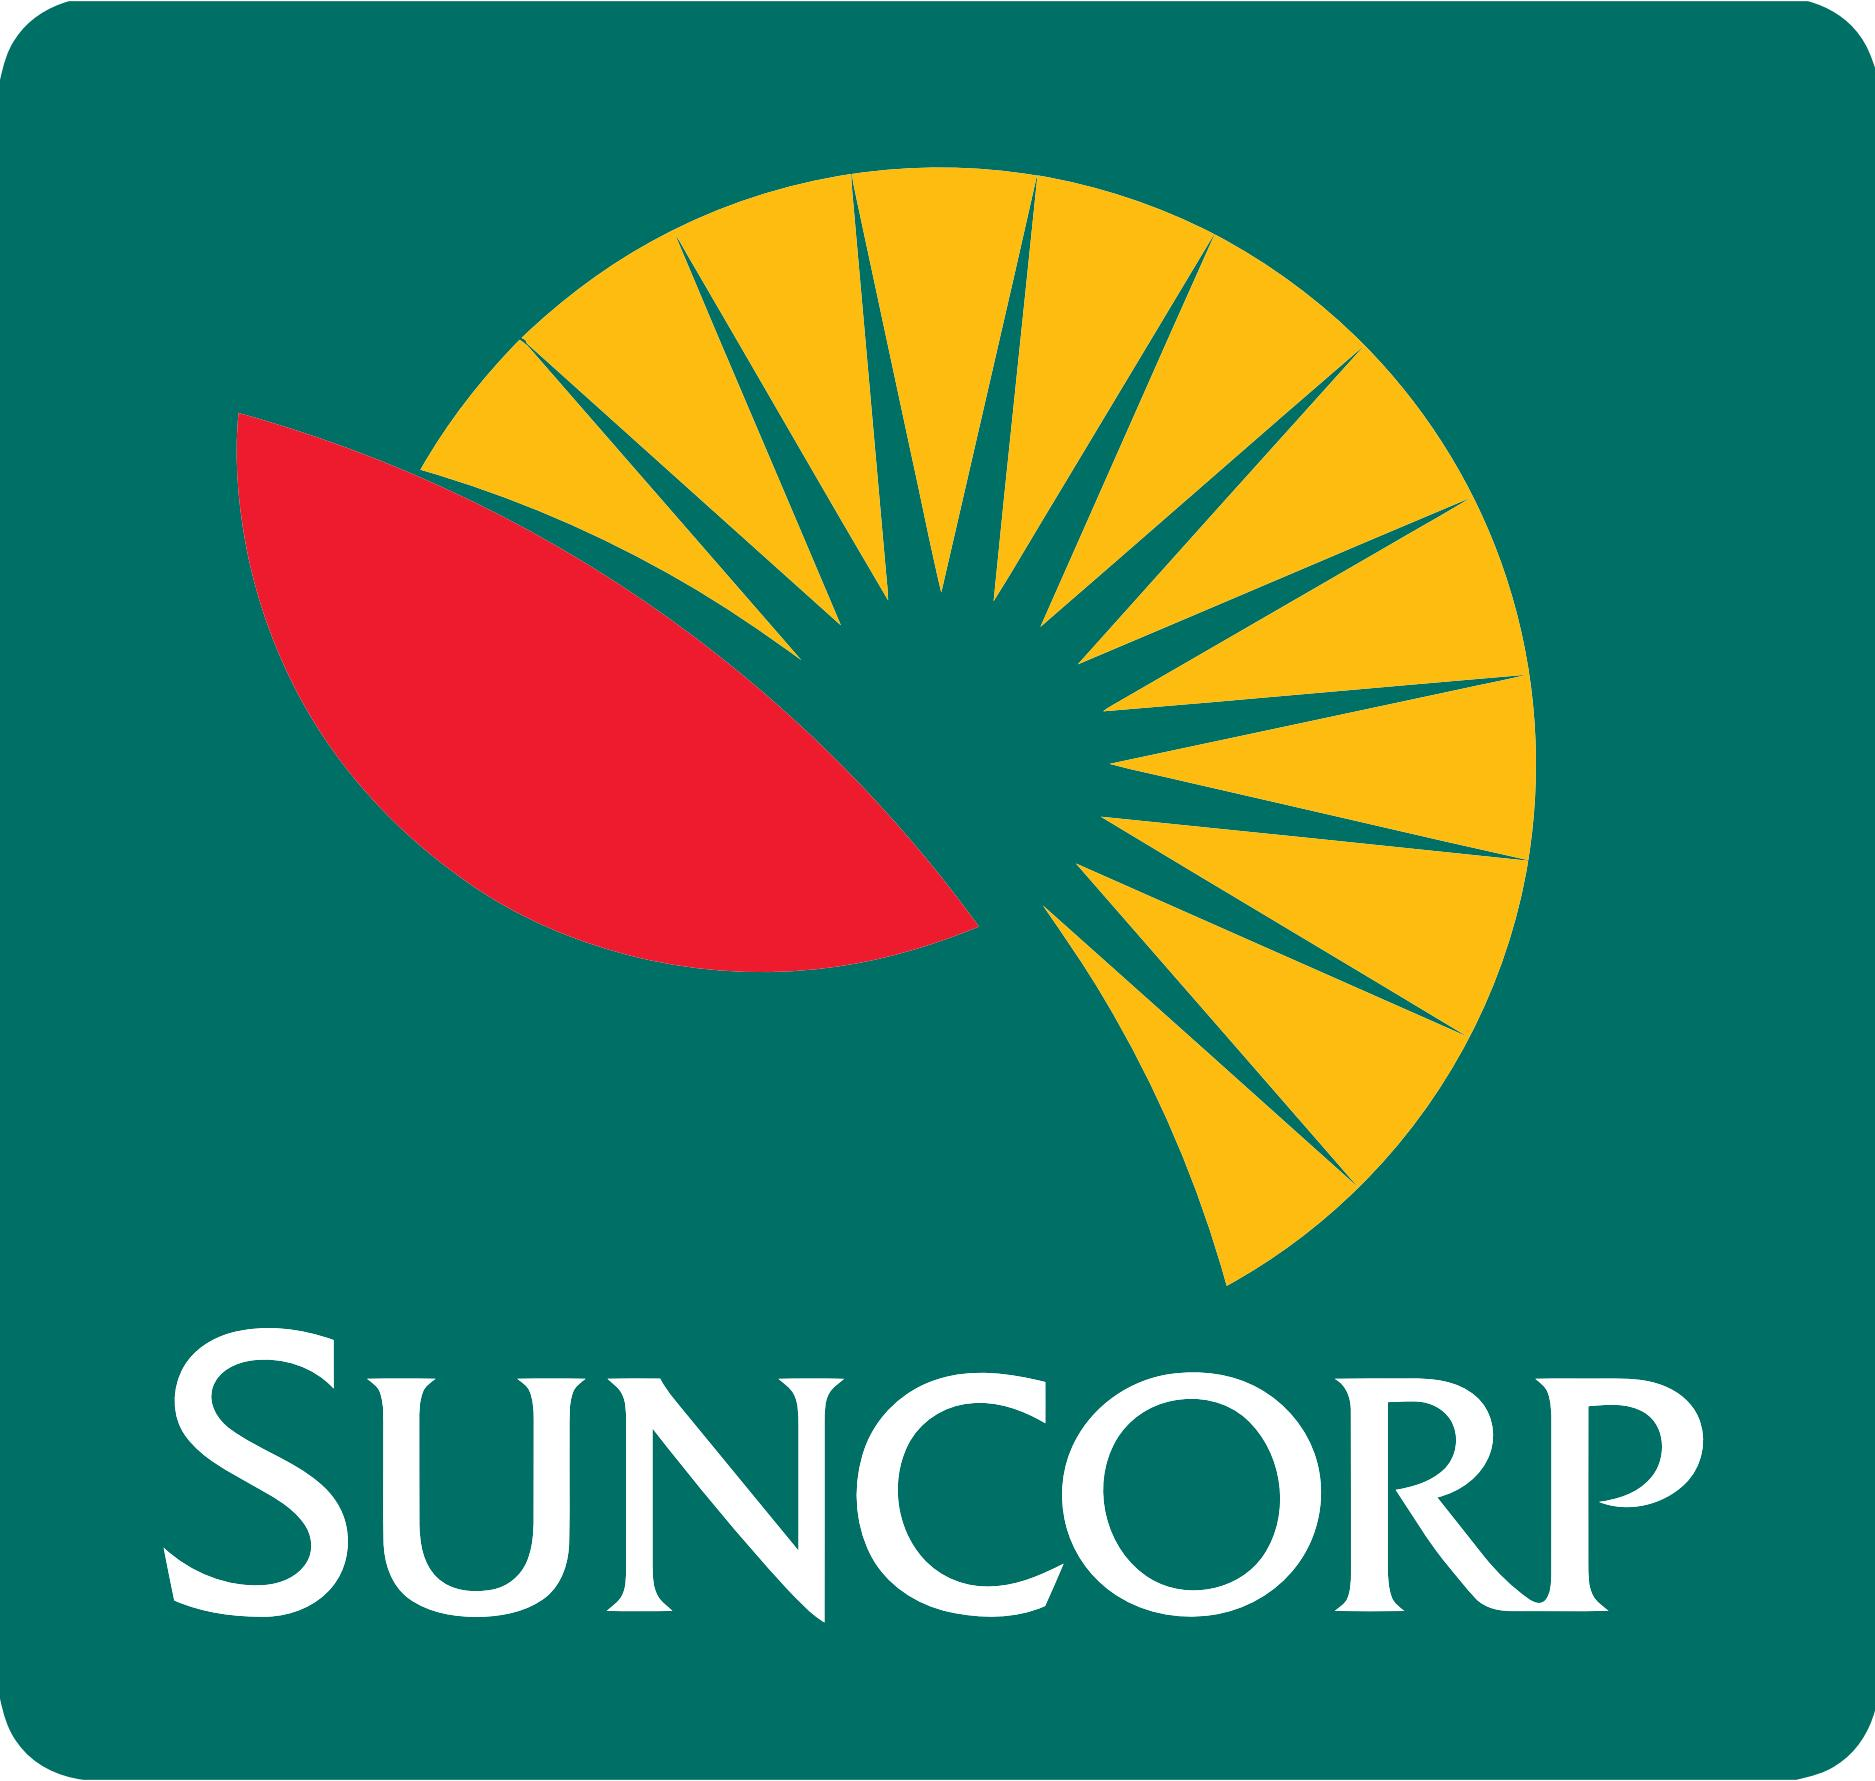 Suncorp Group and Bank Logo [2 EPS File] png